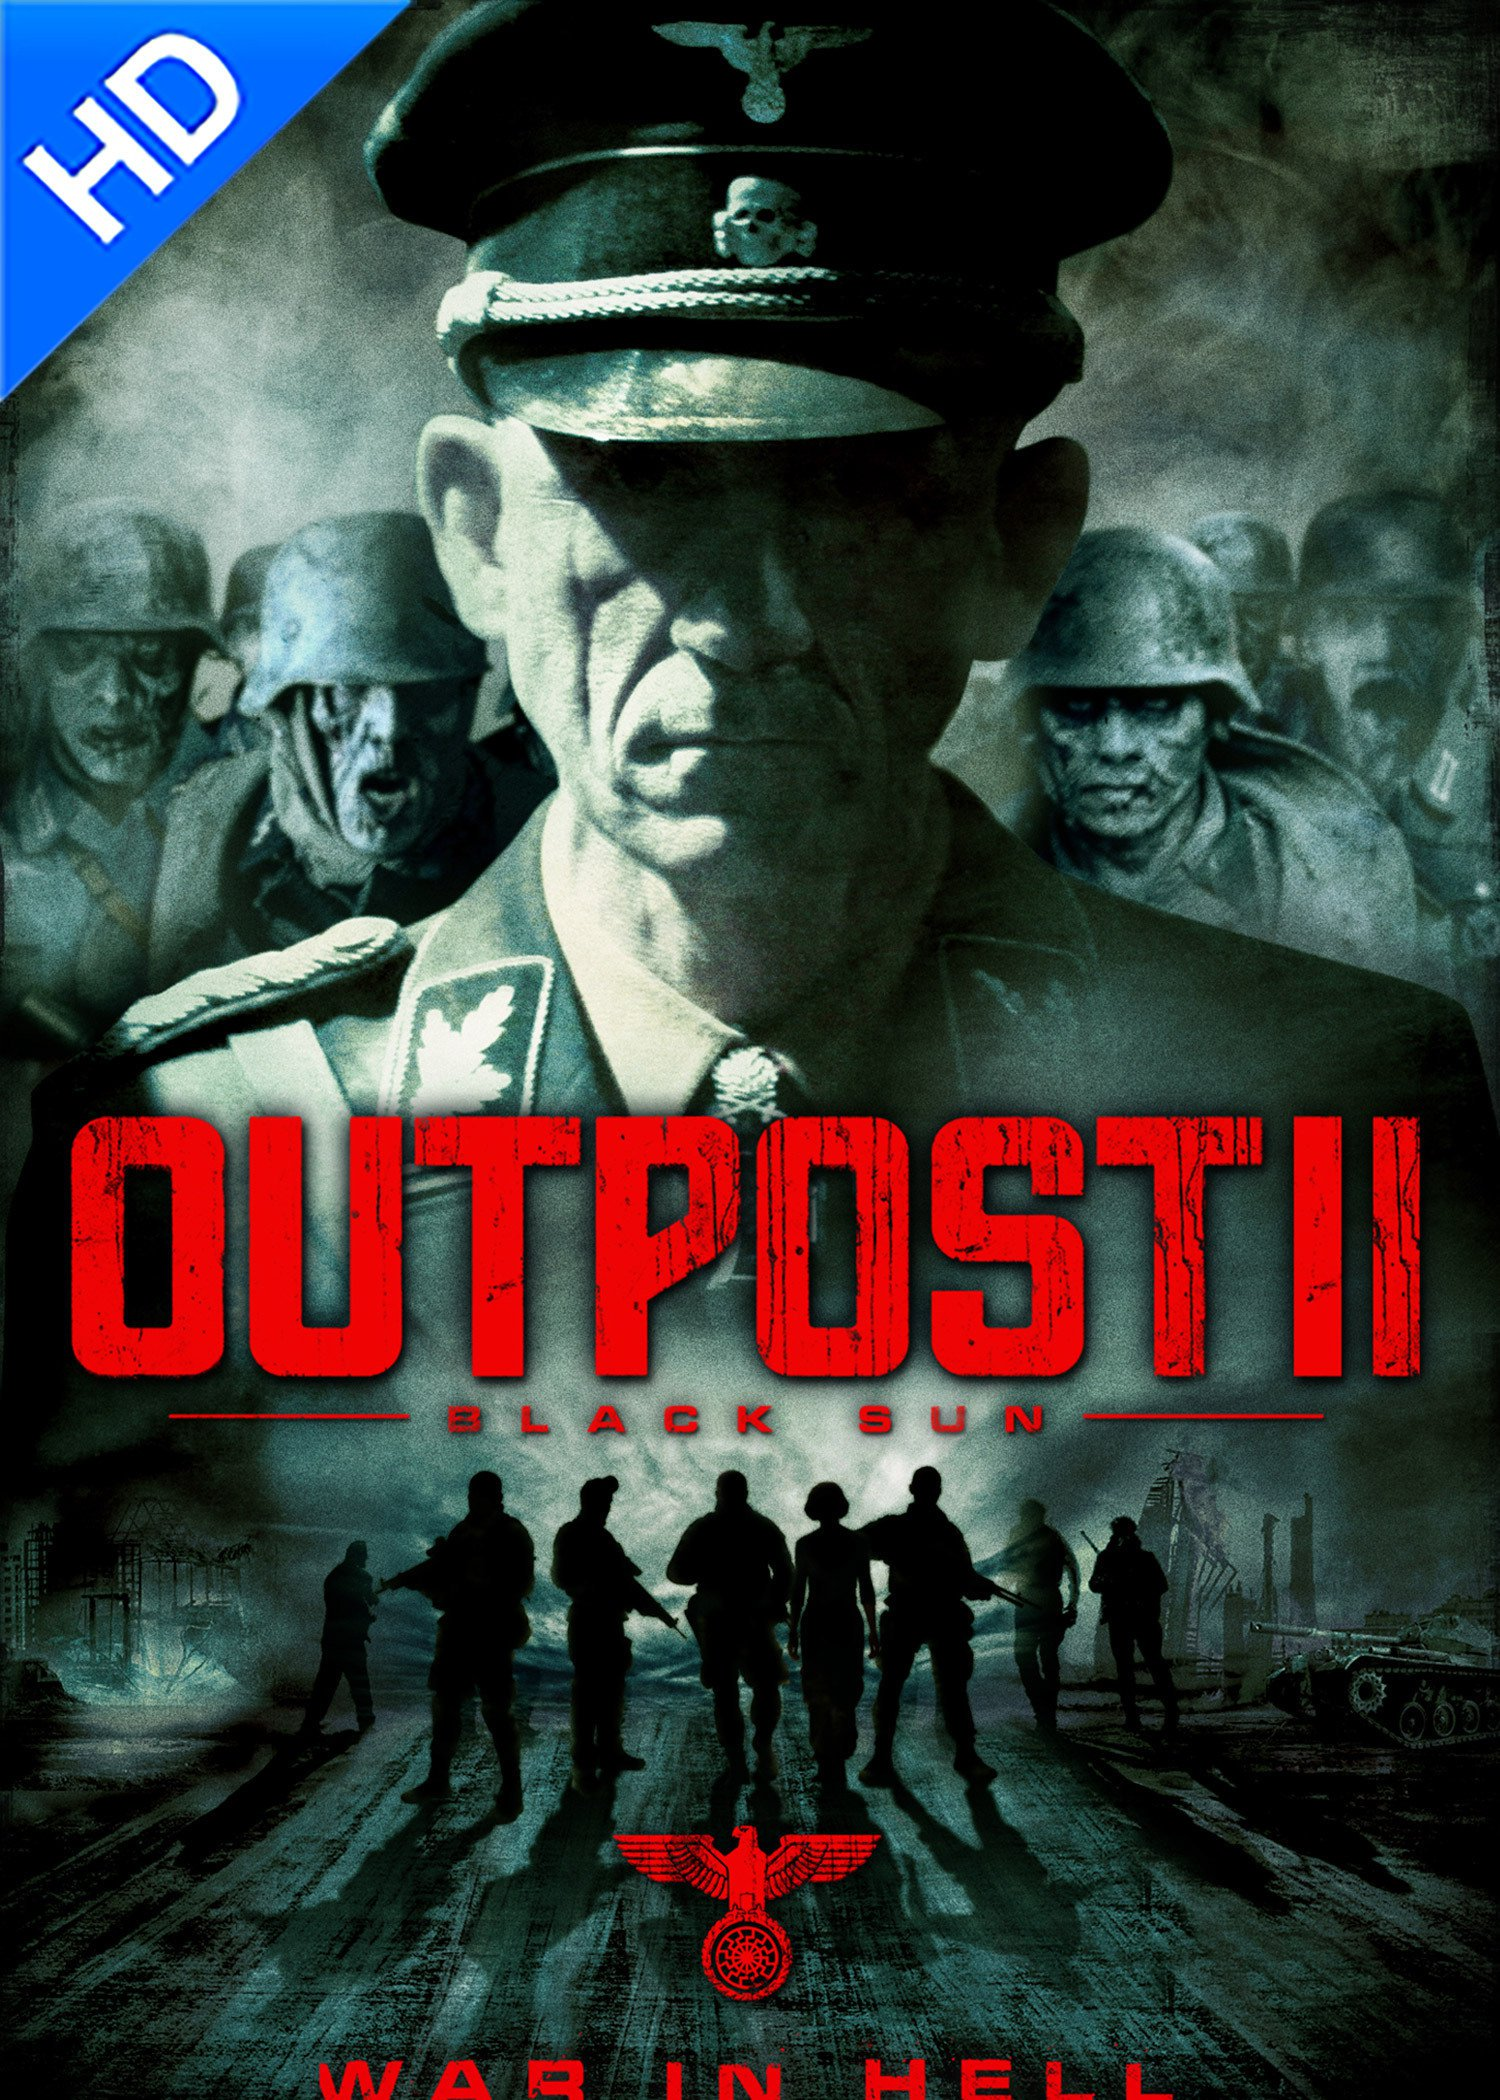 outpost-ii-black-sun